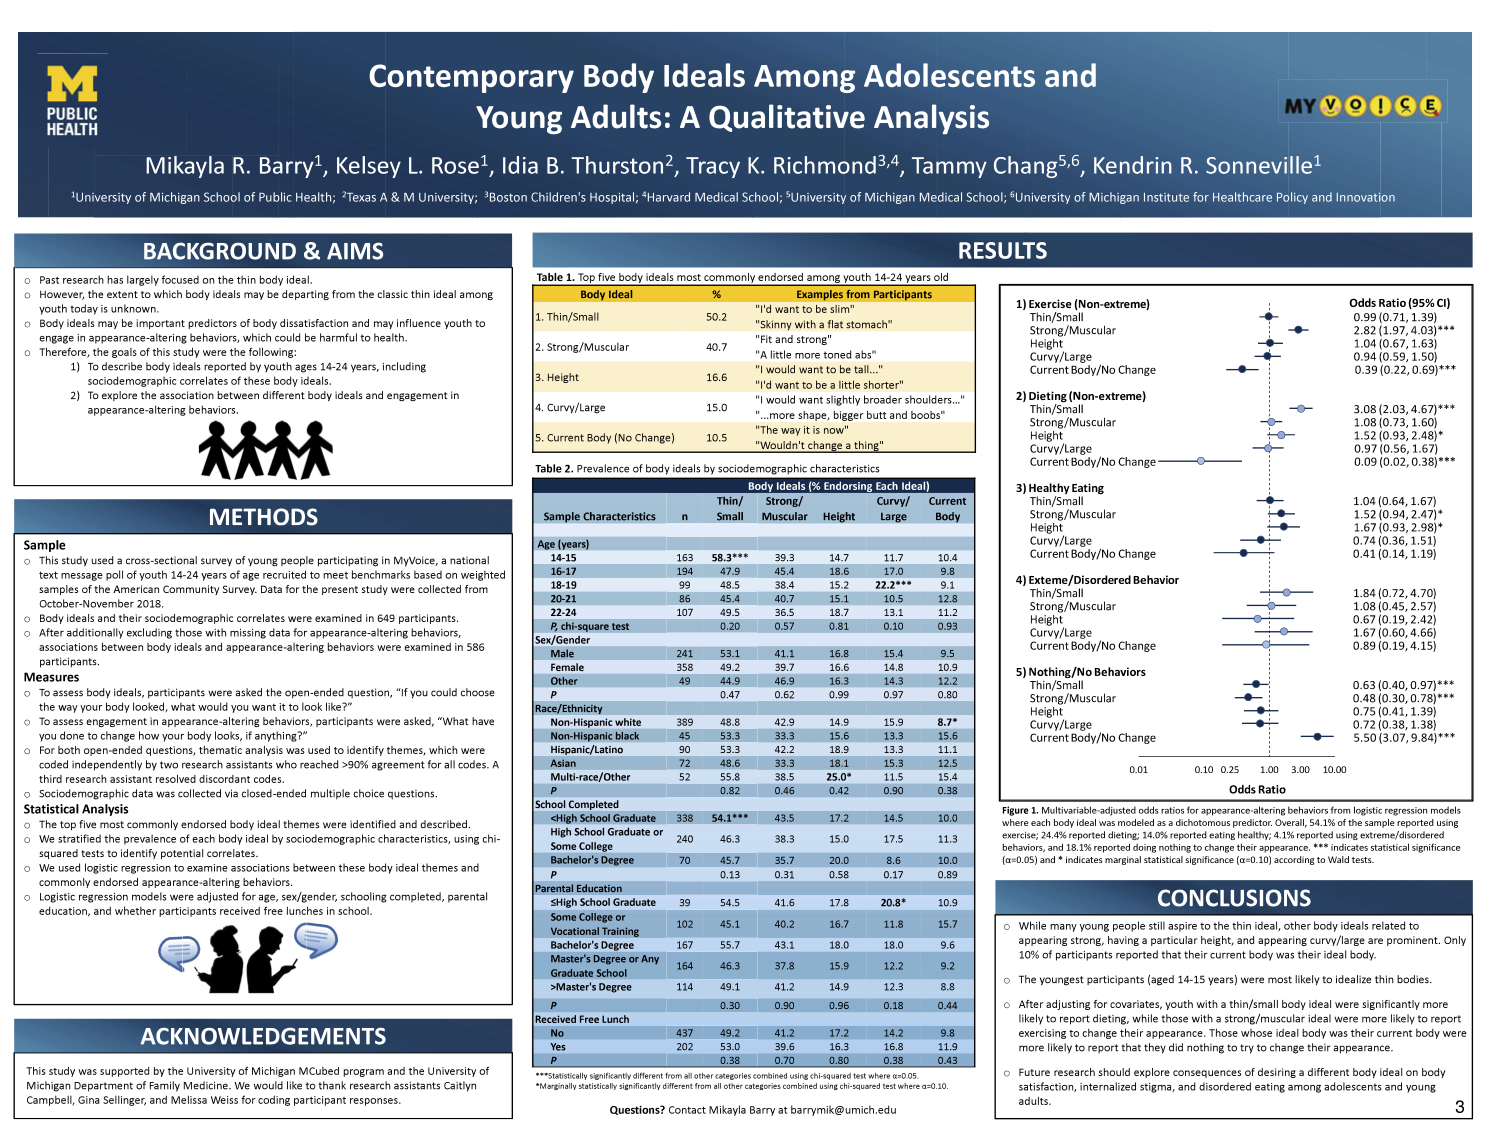 Contemporary Body Ideals Among Adolescents and Young Adults: A Qualitative Analysis